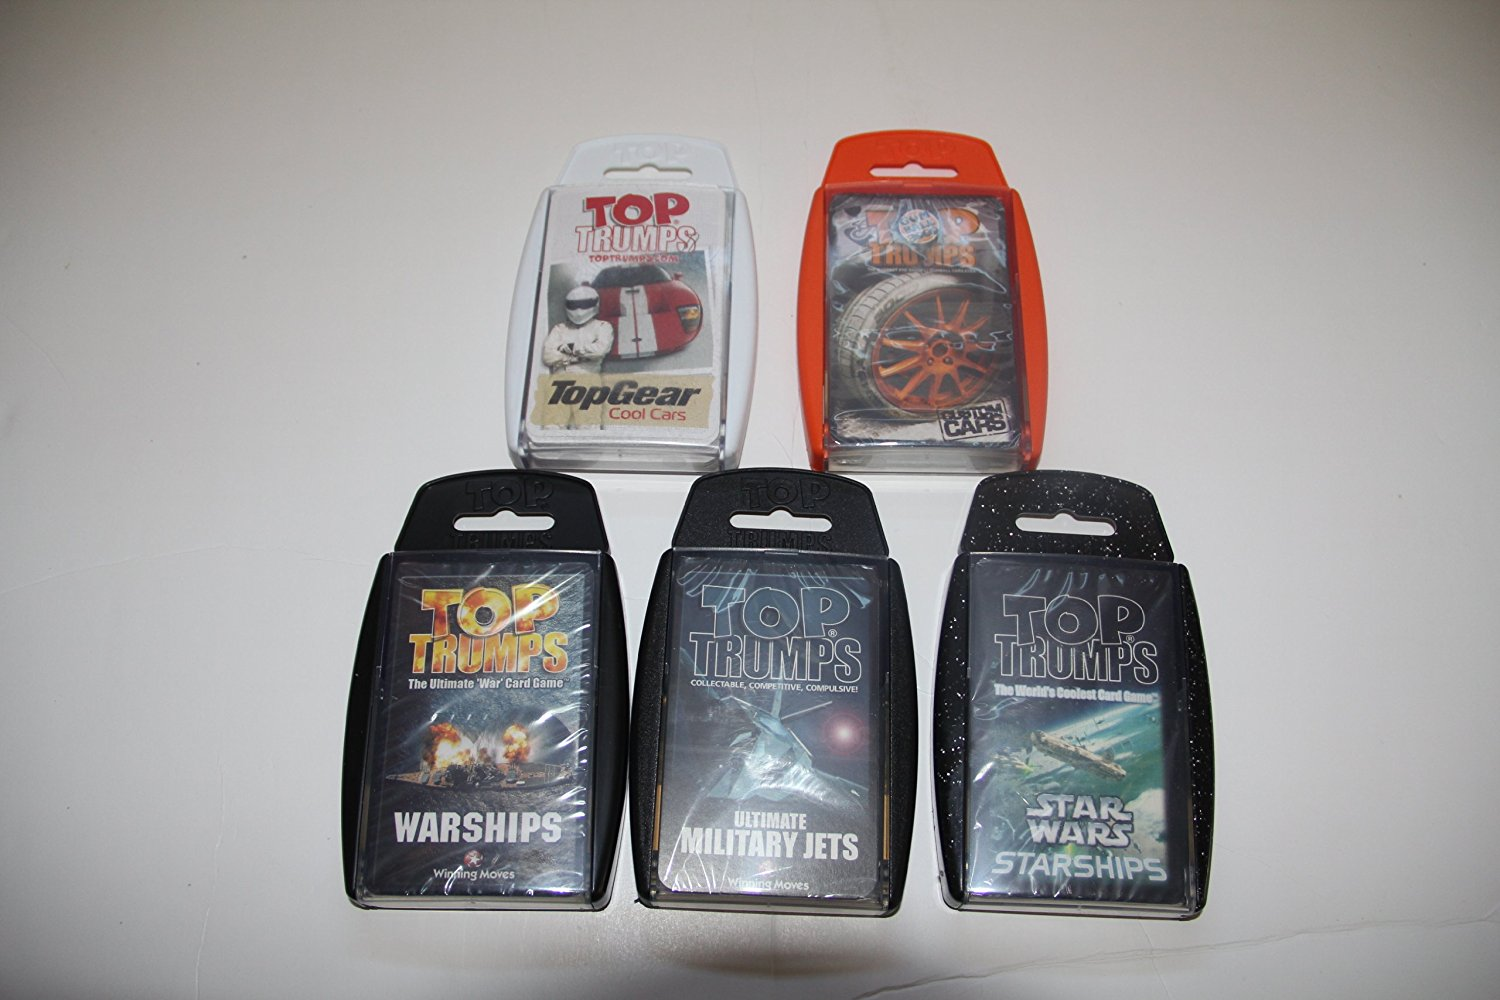 Top Trumps card game - Motor 5 Pack - with Gumball Cars, Cool Cars, Jets, Warships and Star Wars Starships